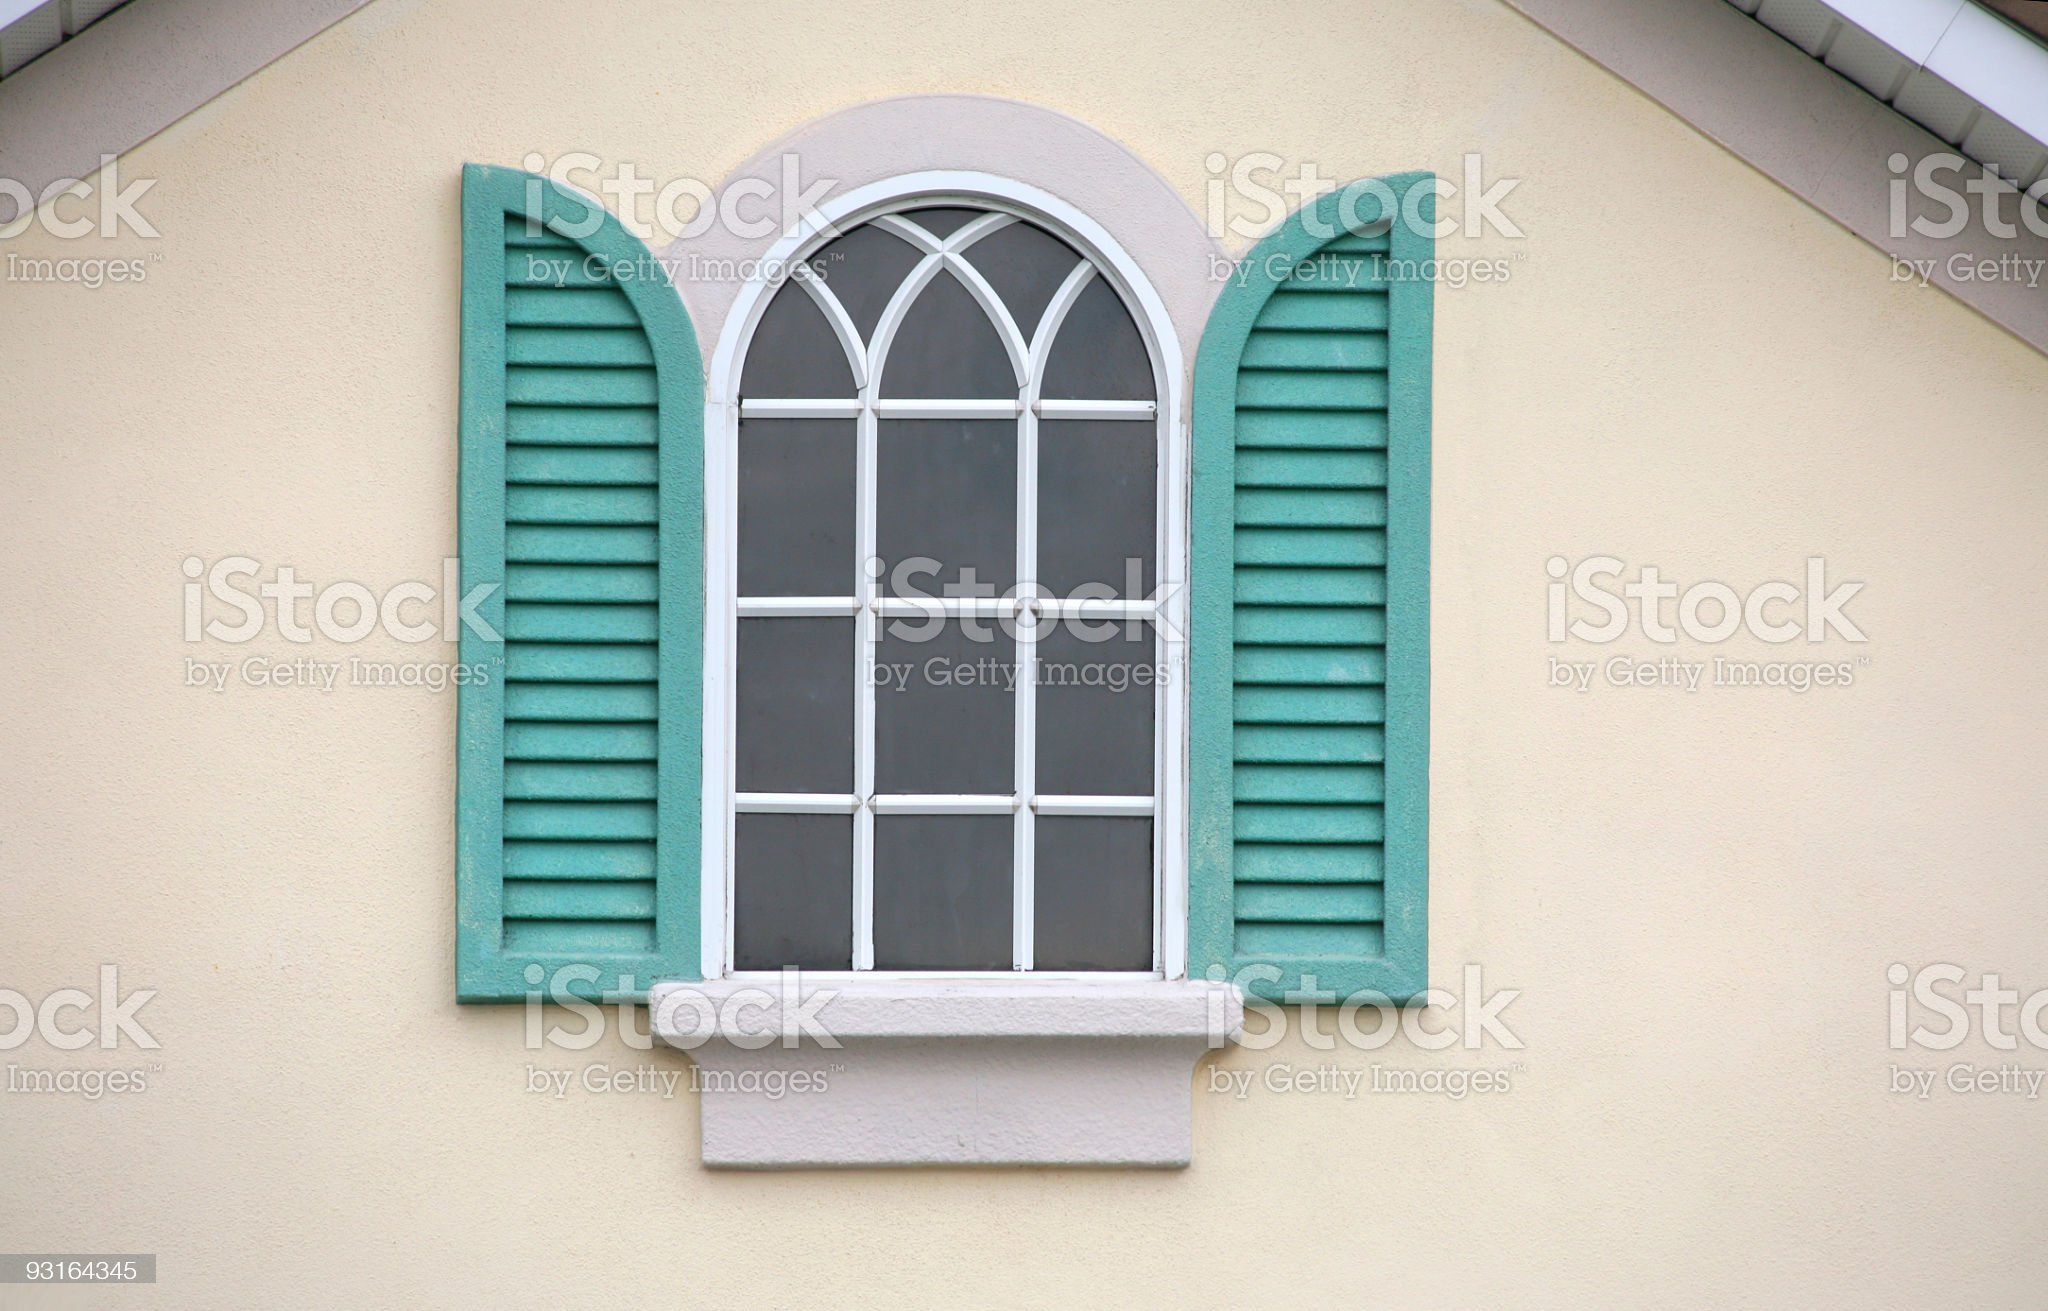 Window with Shutters royalty-free stock photo